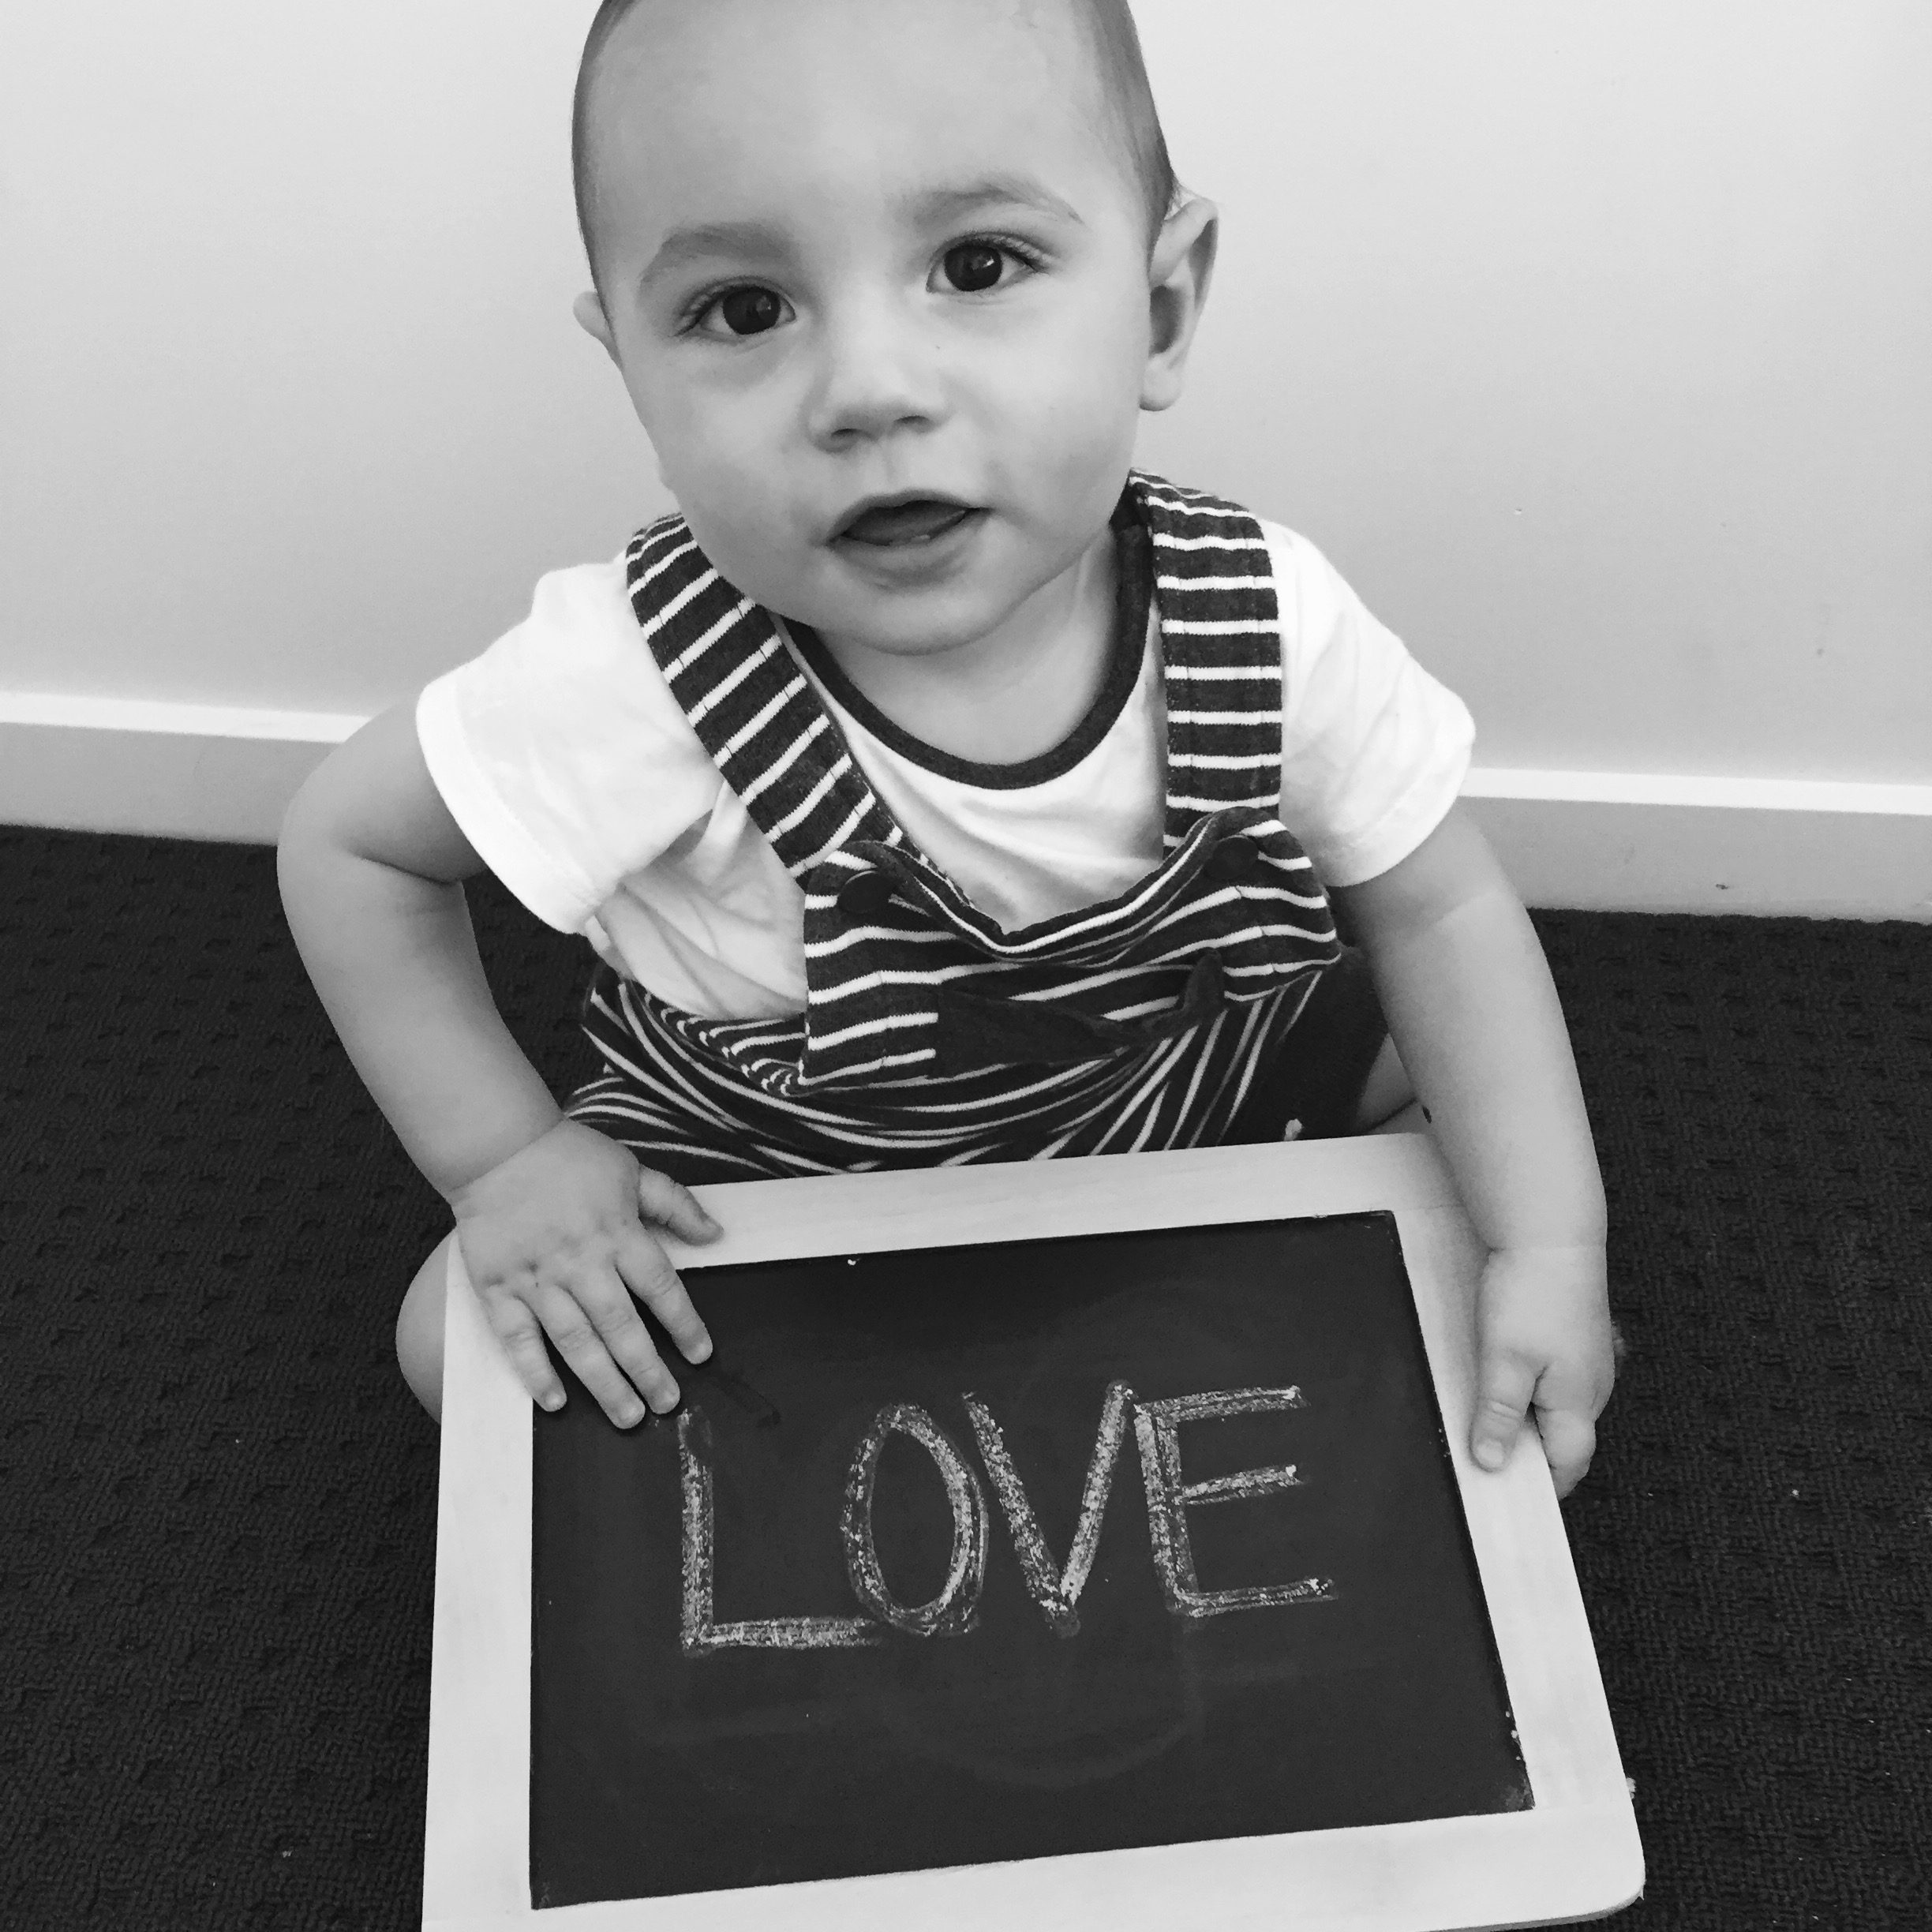 Child holding up a chalkboard with love written on it